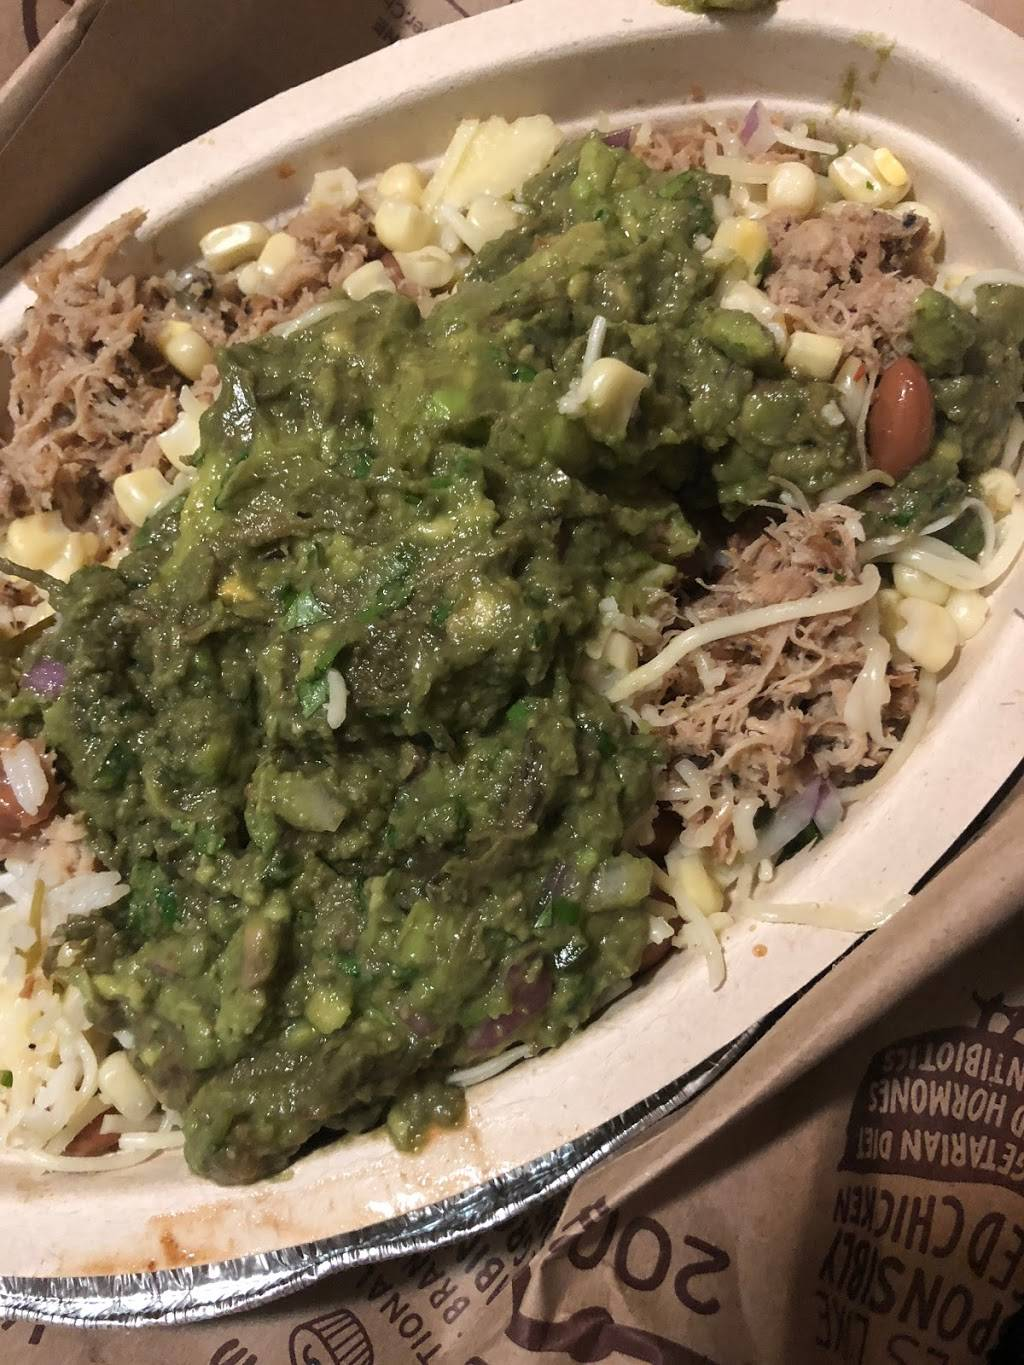 Chipotle Mexican Grill | restaurant | 347 Flatbush Ave, Brooklyn, NY 11238, USA | 7182303102 OR +1 718-230-3102